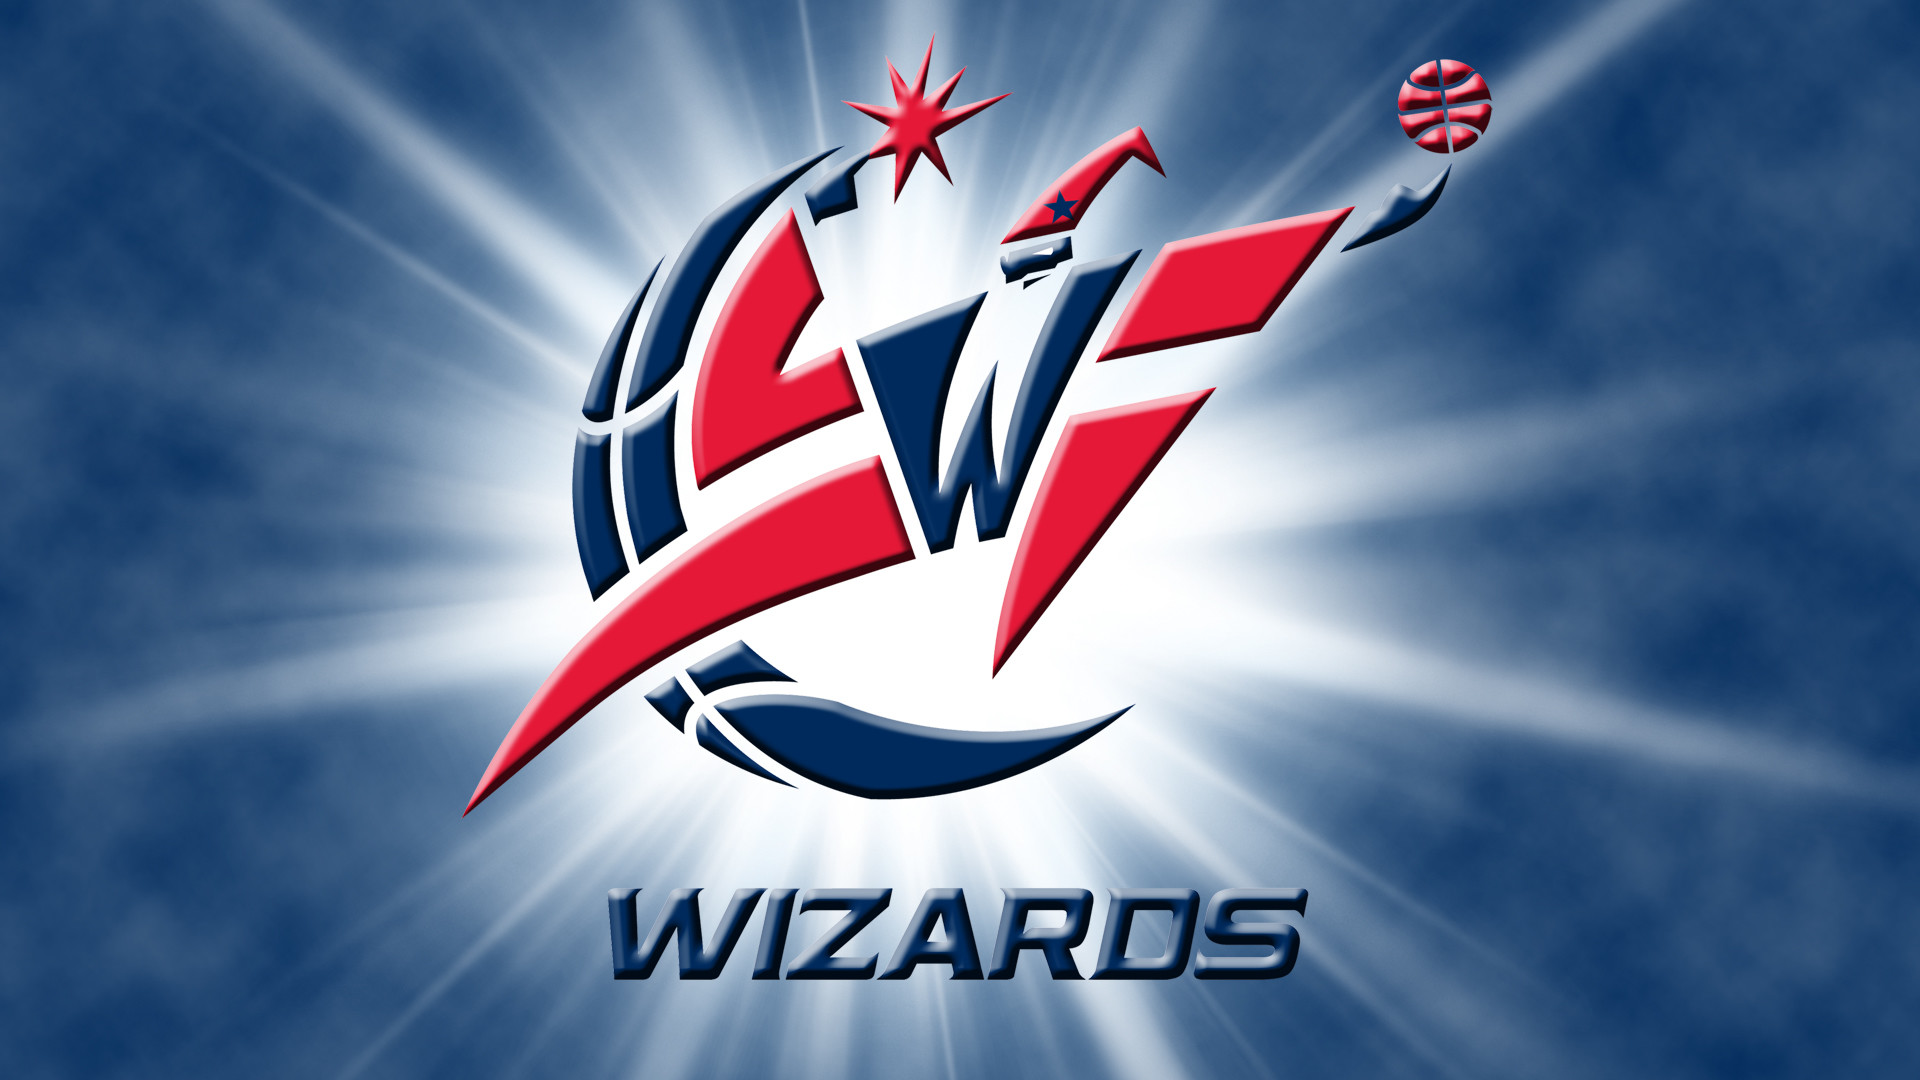 1920x1080 WASHINGTON WIZARDS nba basketball (28) wallpaper |  | 226679 .